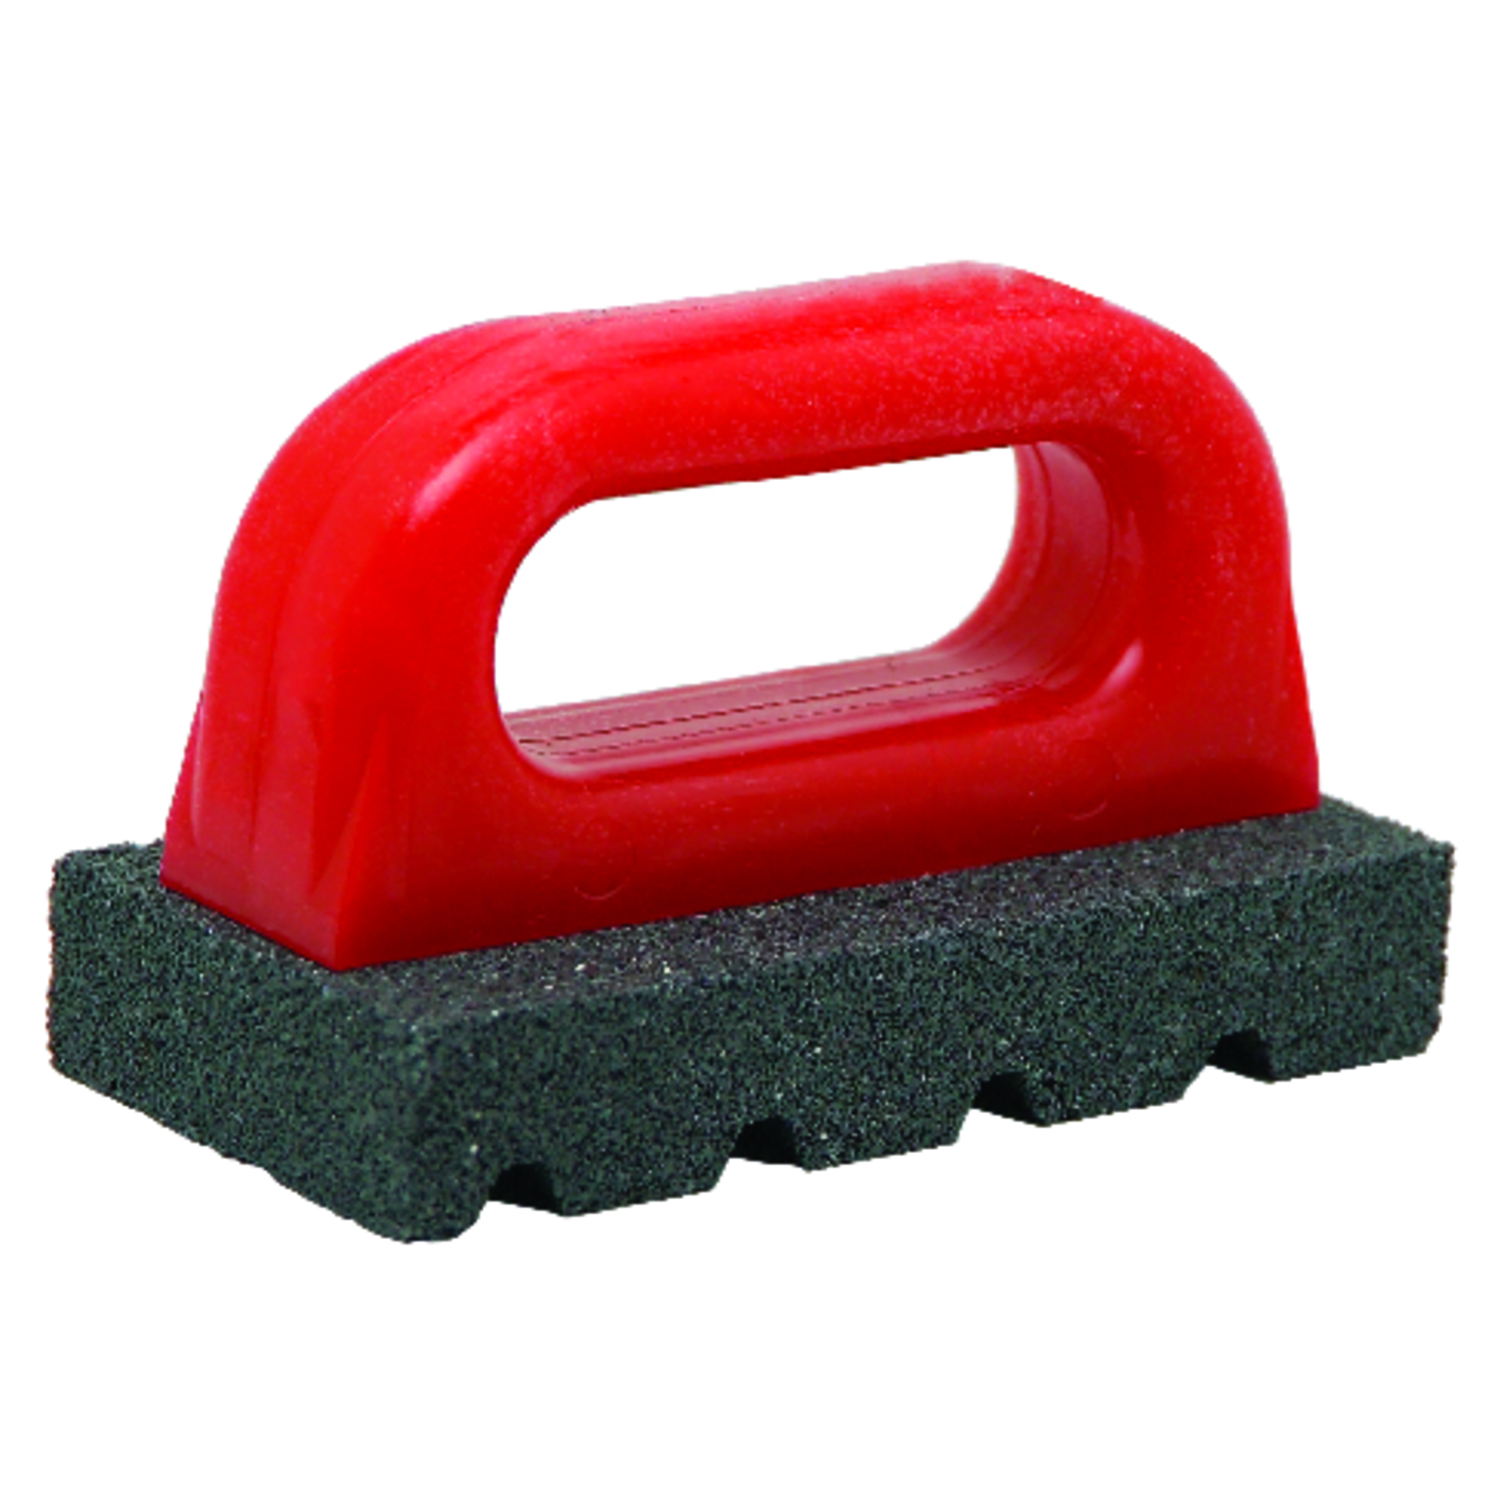 Gator  6 in. L Silicon Carbide  Rubbing Brick  1 pc.